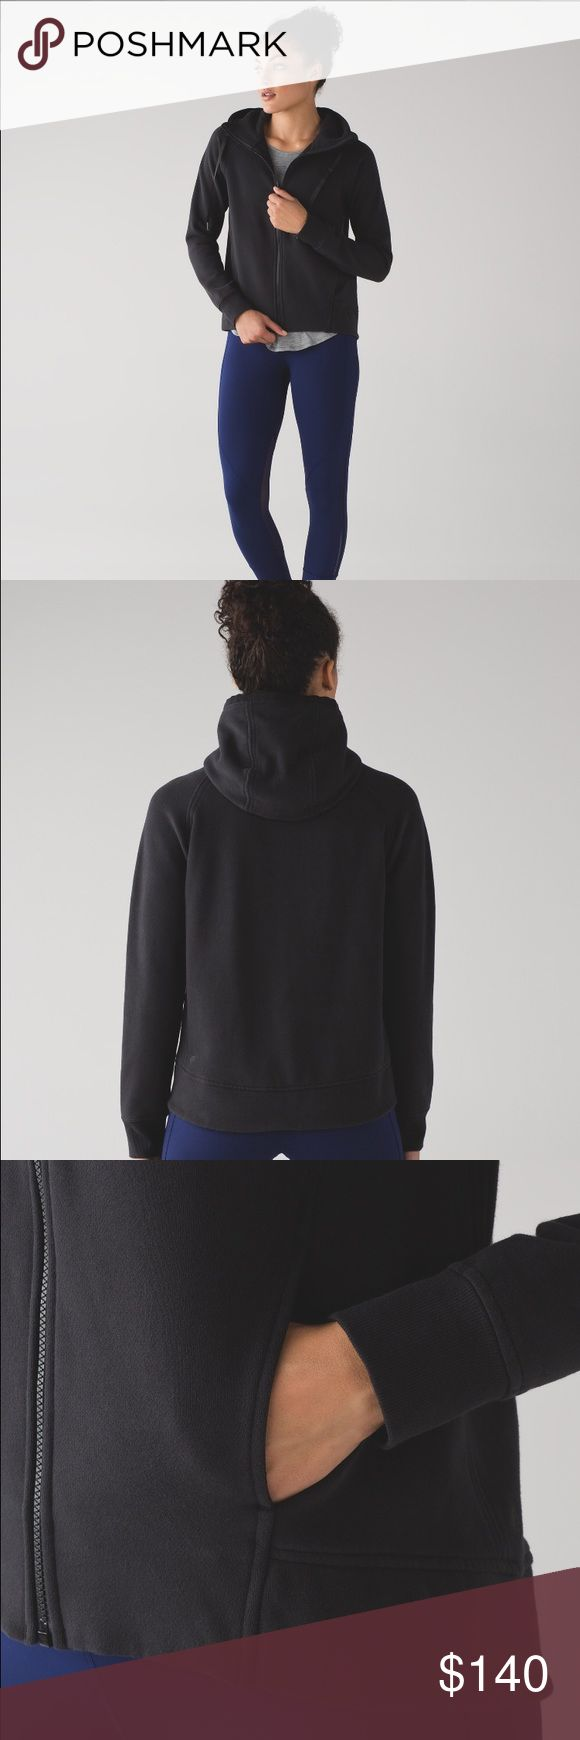 """Fleece Be True"" Lululemon Hoodie Comfortable, cozy, and warm!  I also have this in Darkest Magenta (size 8) and Gray (size 6).  Offers are welcome! lululemon athletica Tops Sweatshirts & Hoodies"